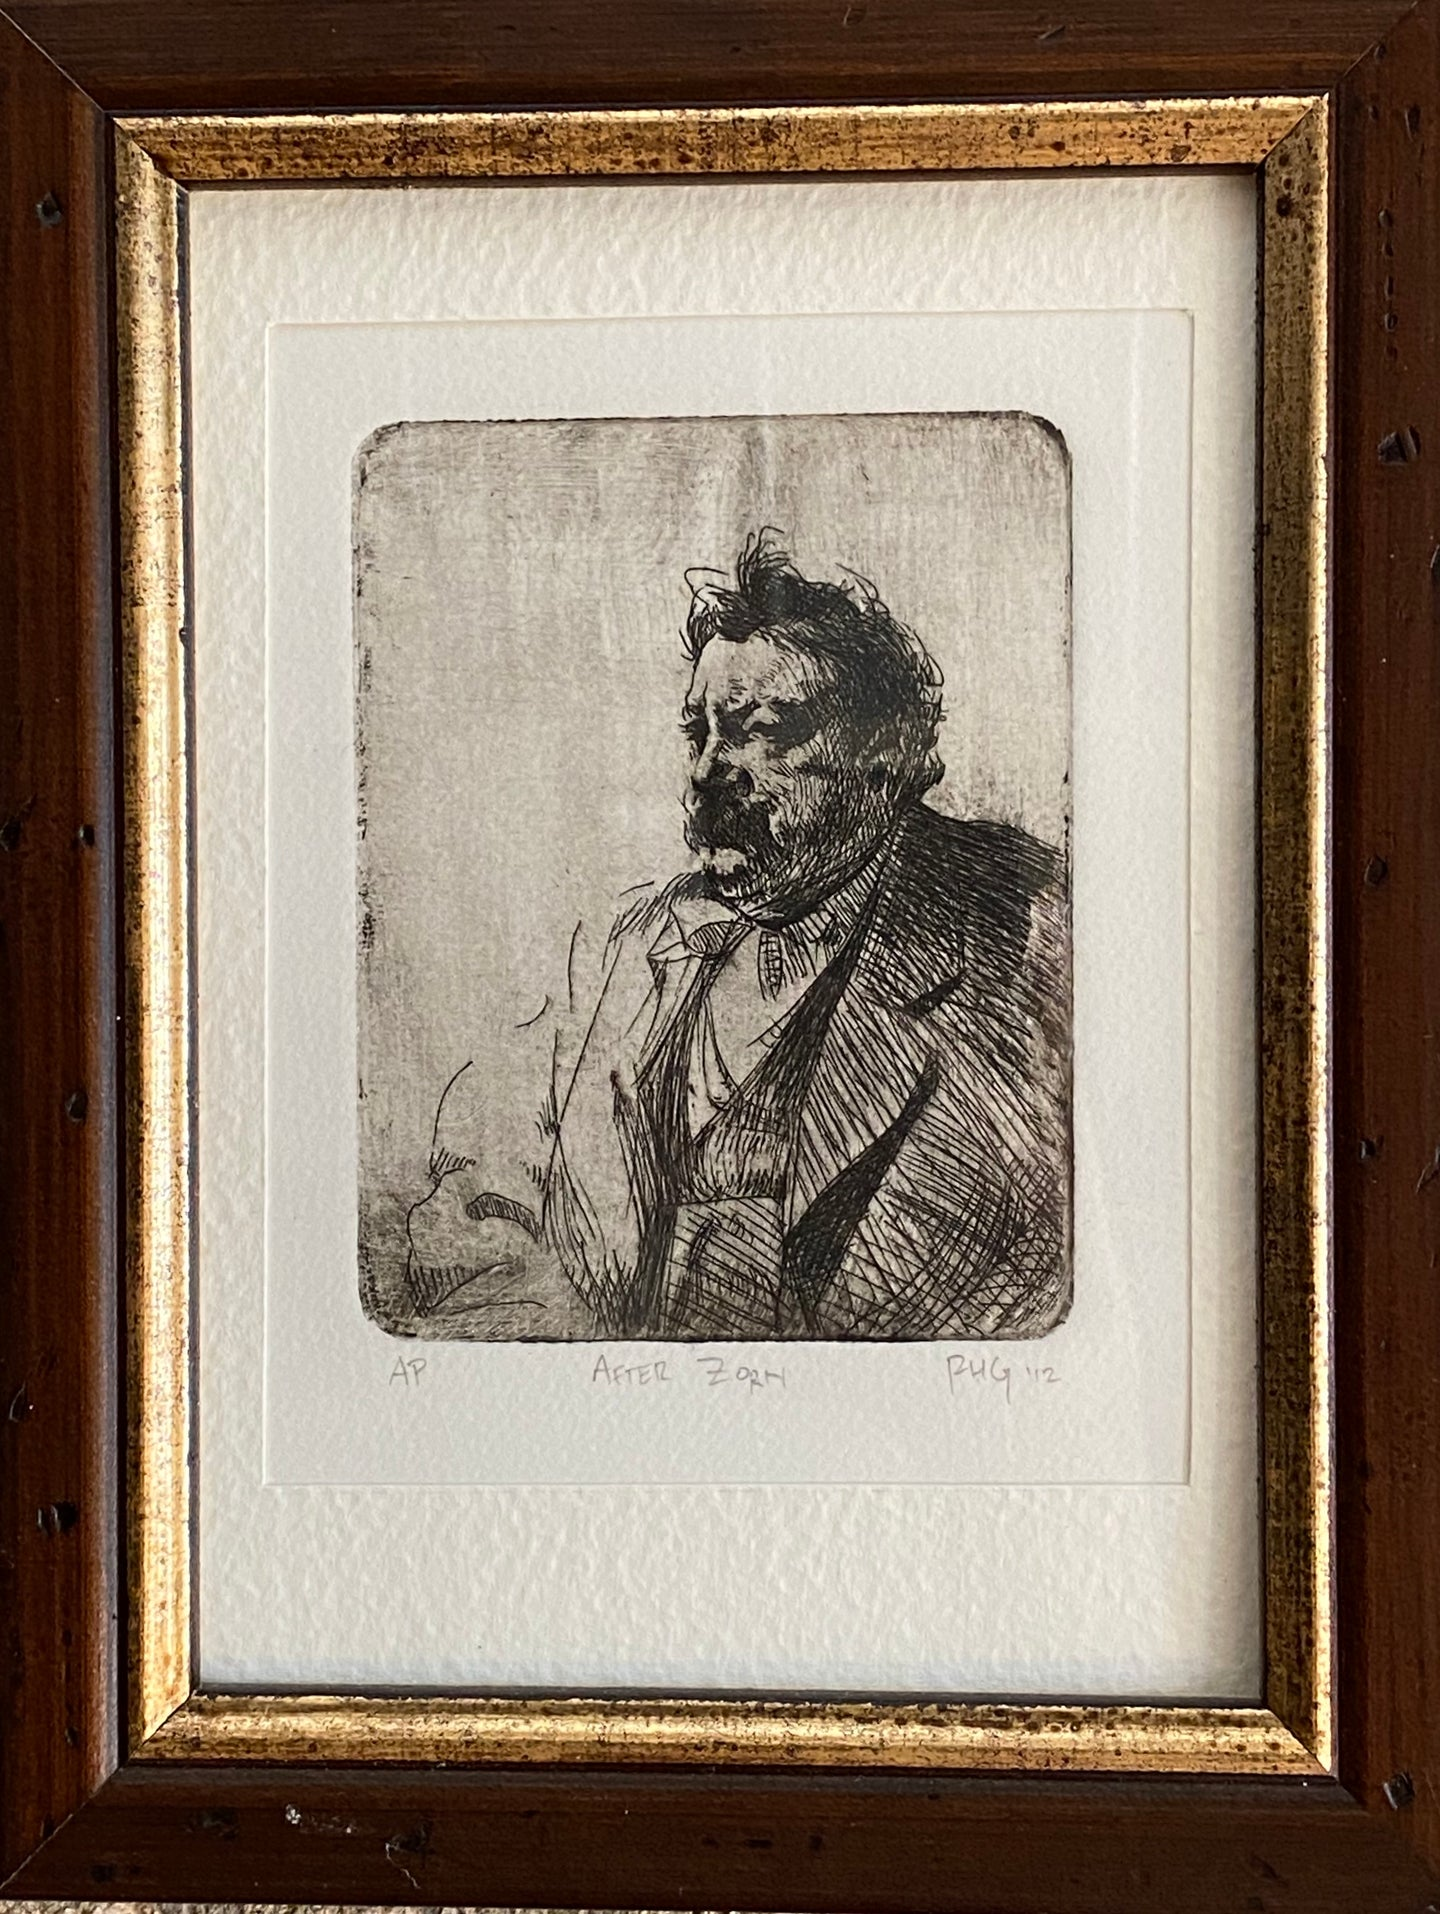 Etching After Zorn